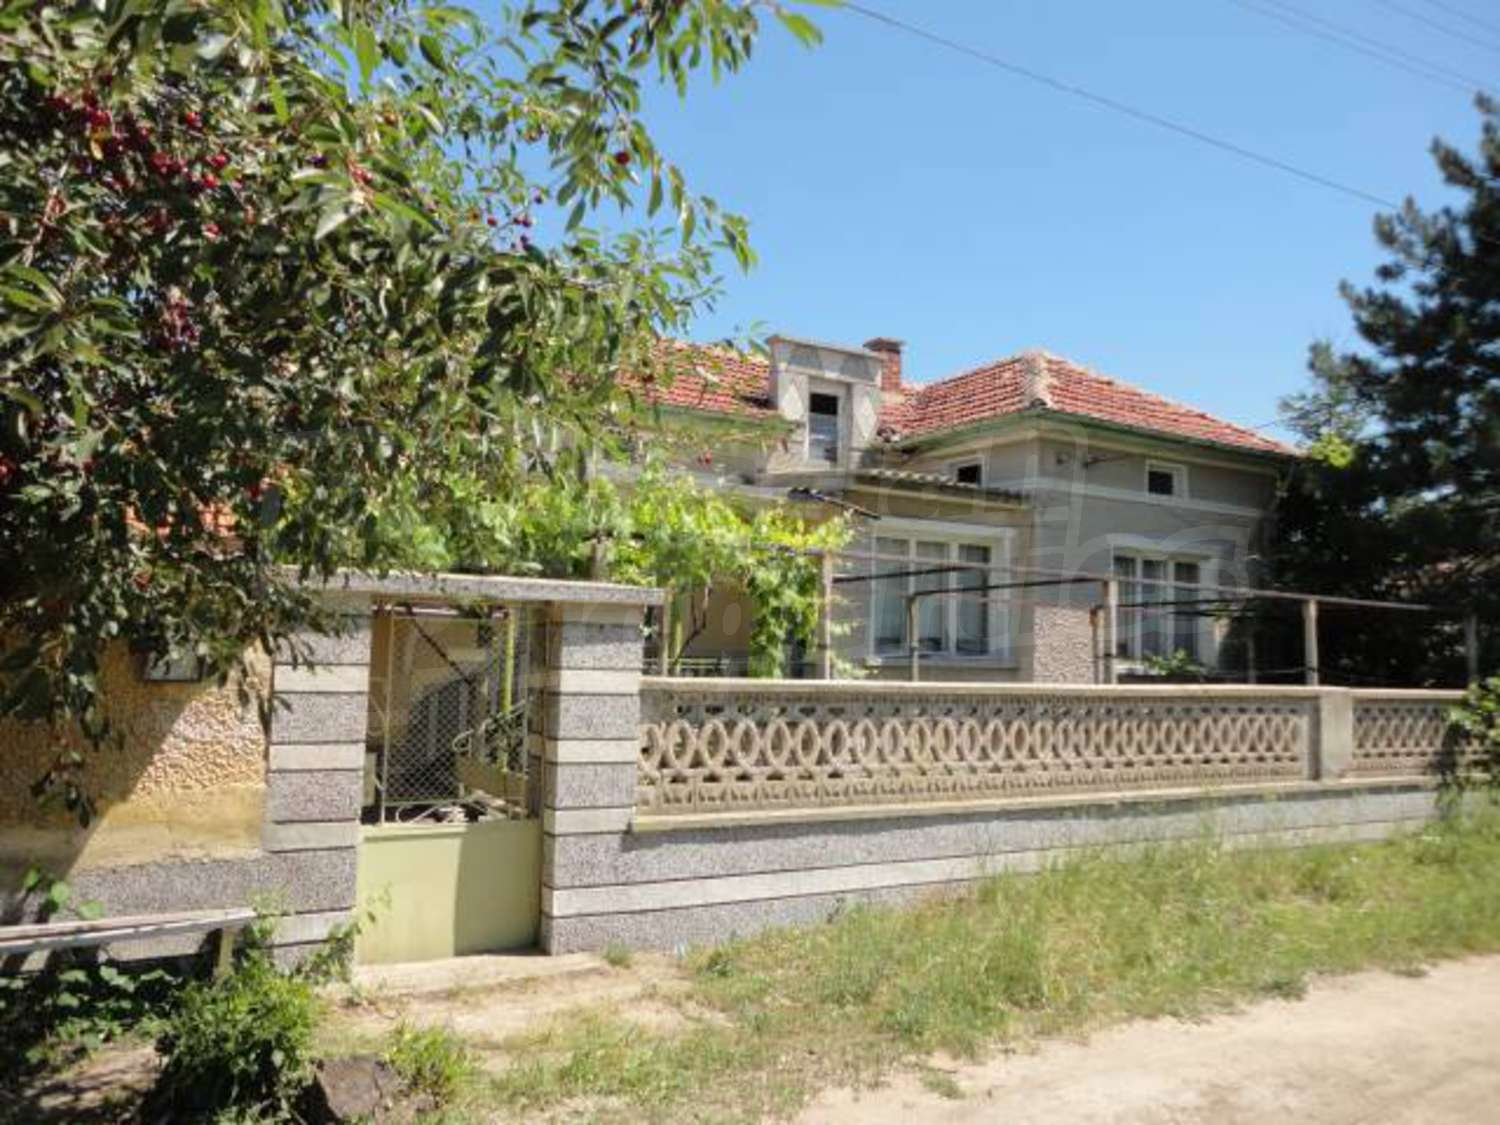 House for sale near stara zagora chirpan bulgaria nice for Big nice houses for sale